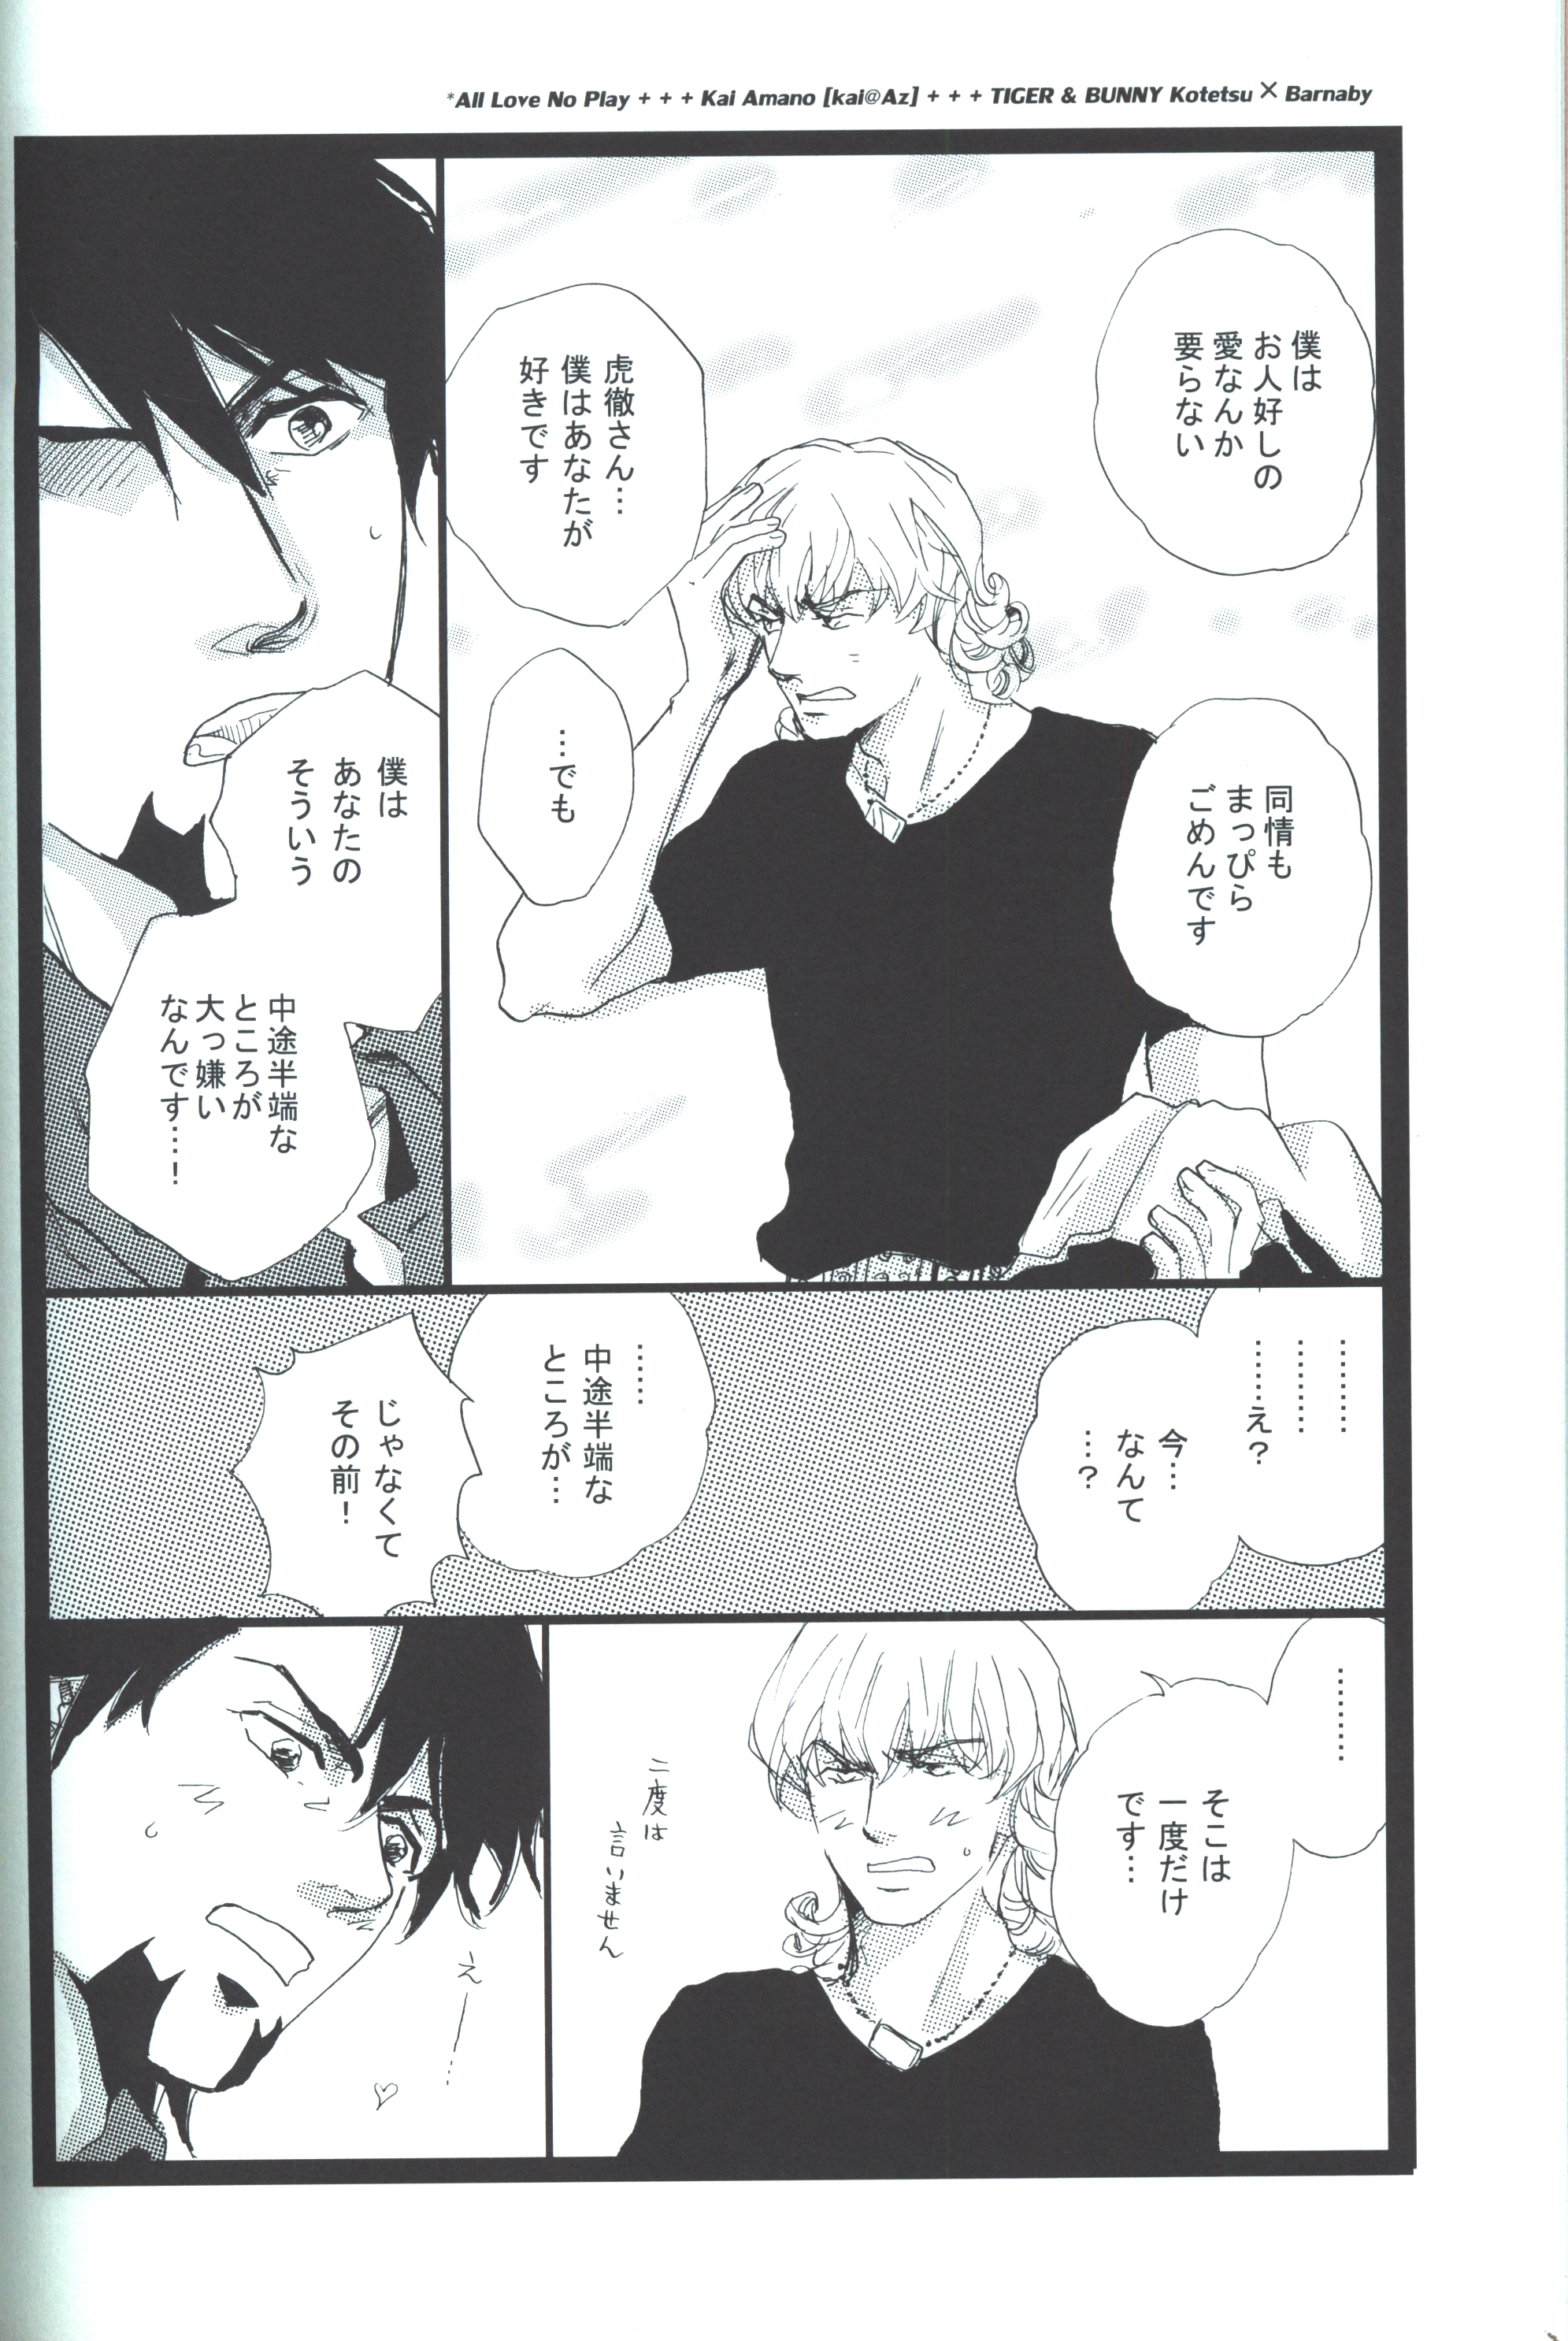 [Boys Love (Yaoi) : R18] Doujinshi - TIGER & BUNNY / Kotetsu x Barnaby (ALL LOVE NO PLAY) / kai@Az